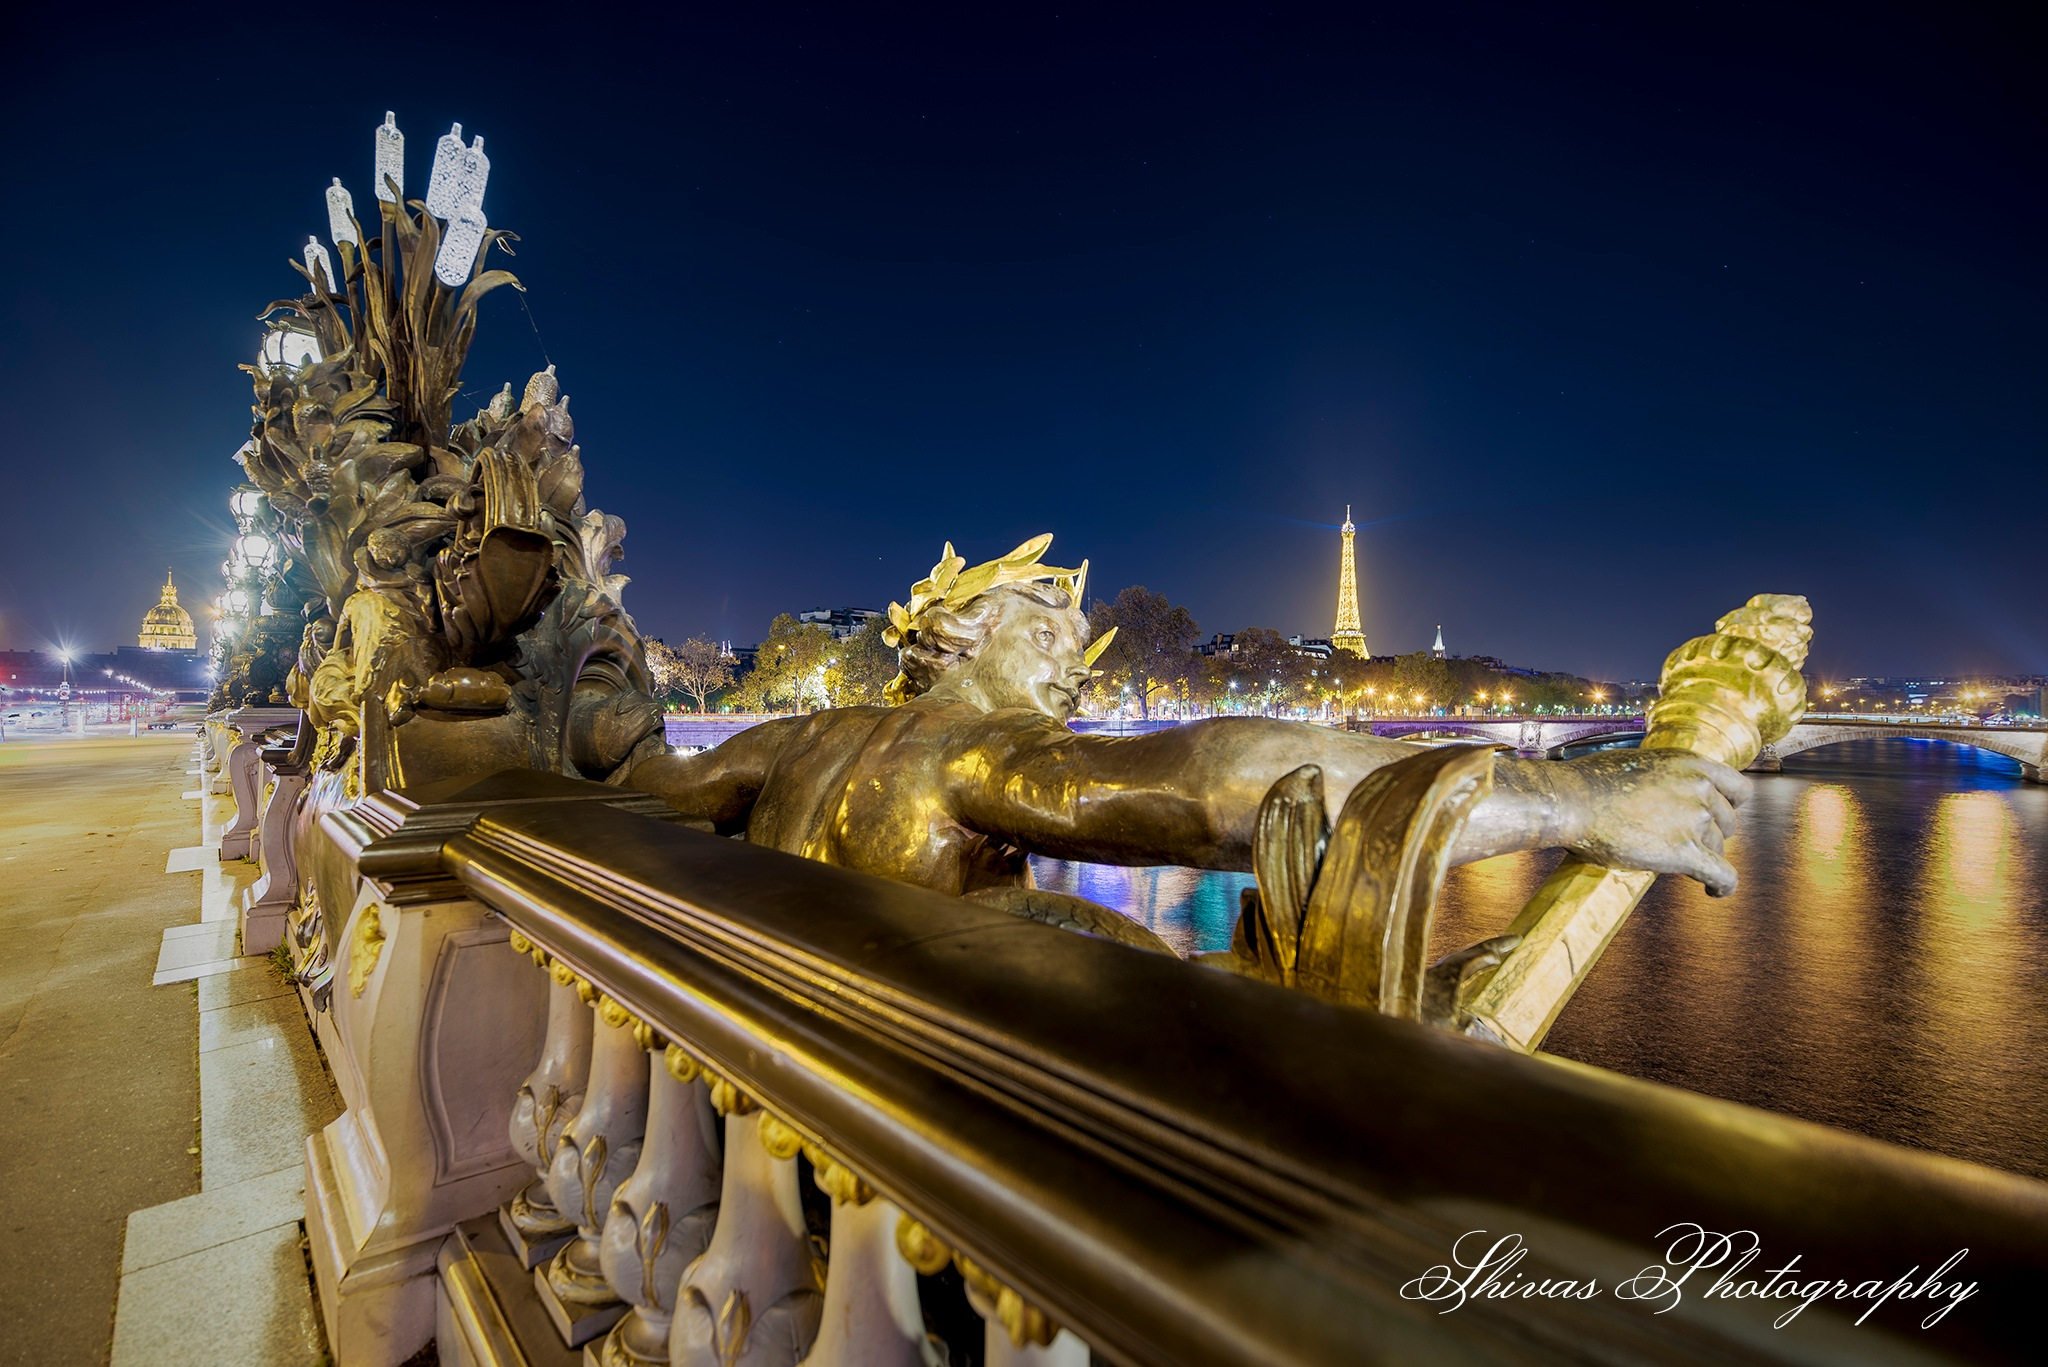 PARIS BY NIGHT by Shivas Sivakumar